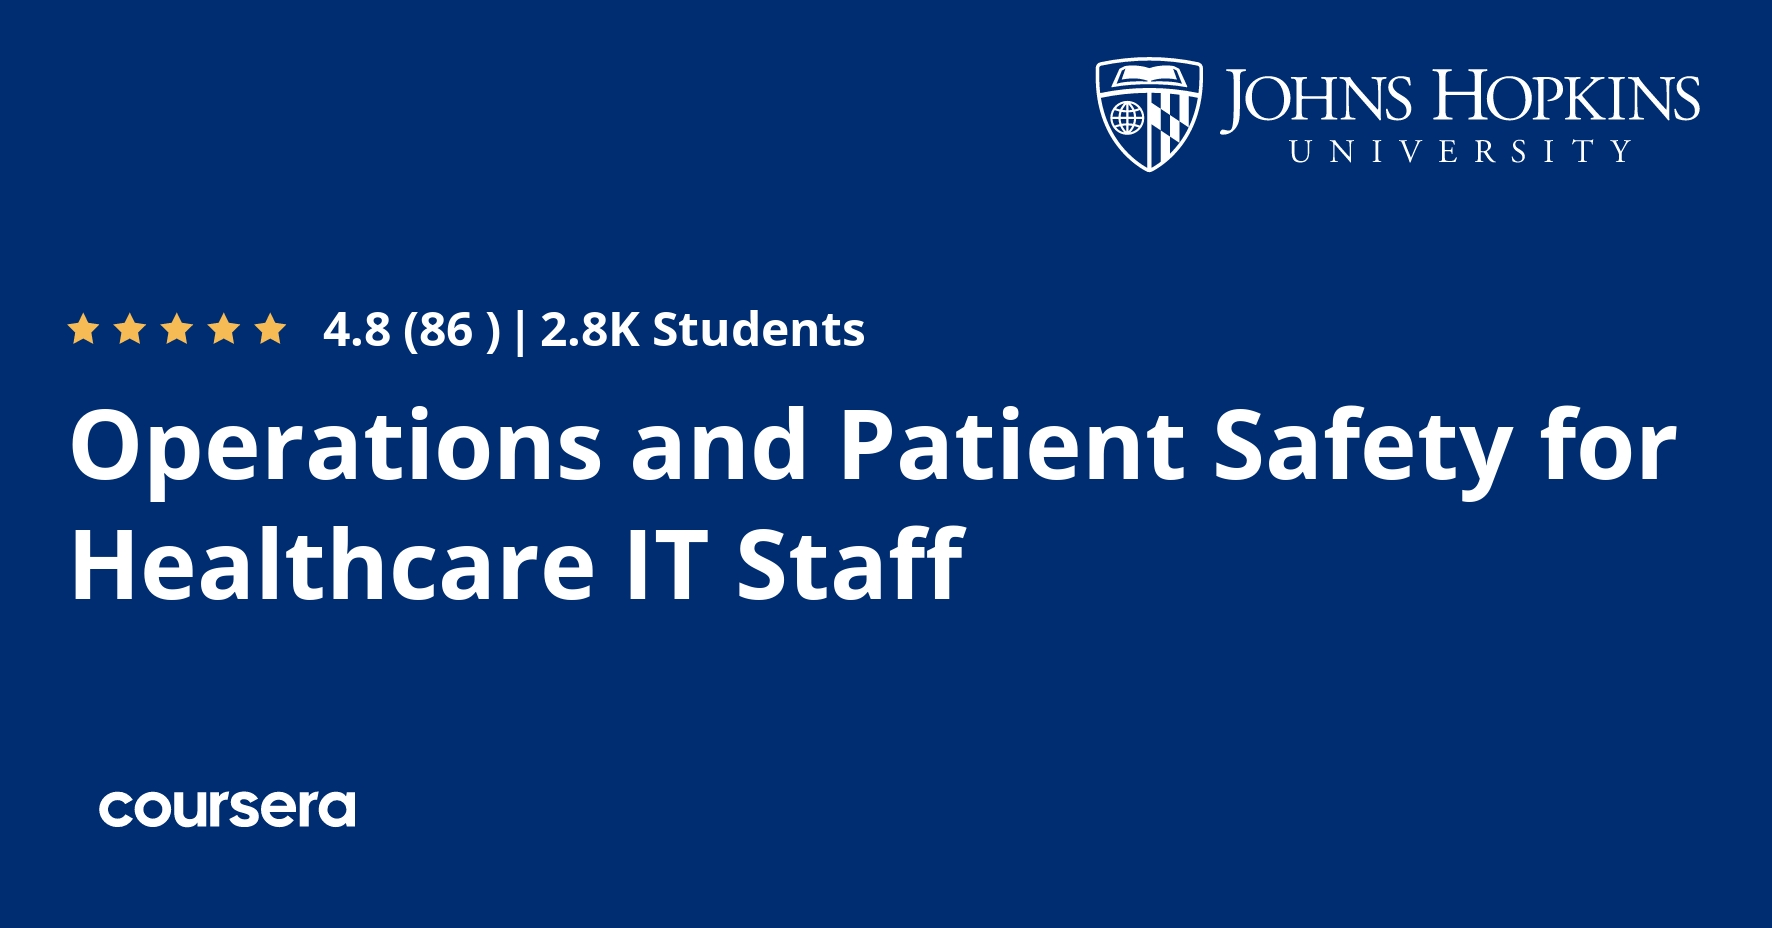 Operations and Patient Safety for Healthcare IT Staff Coursera